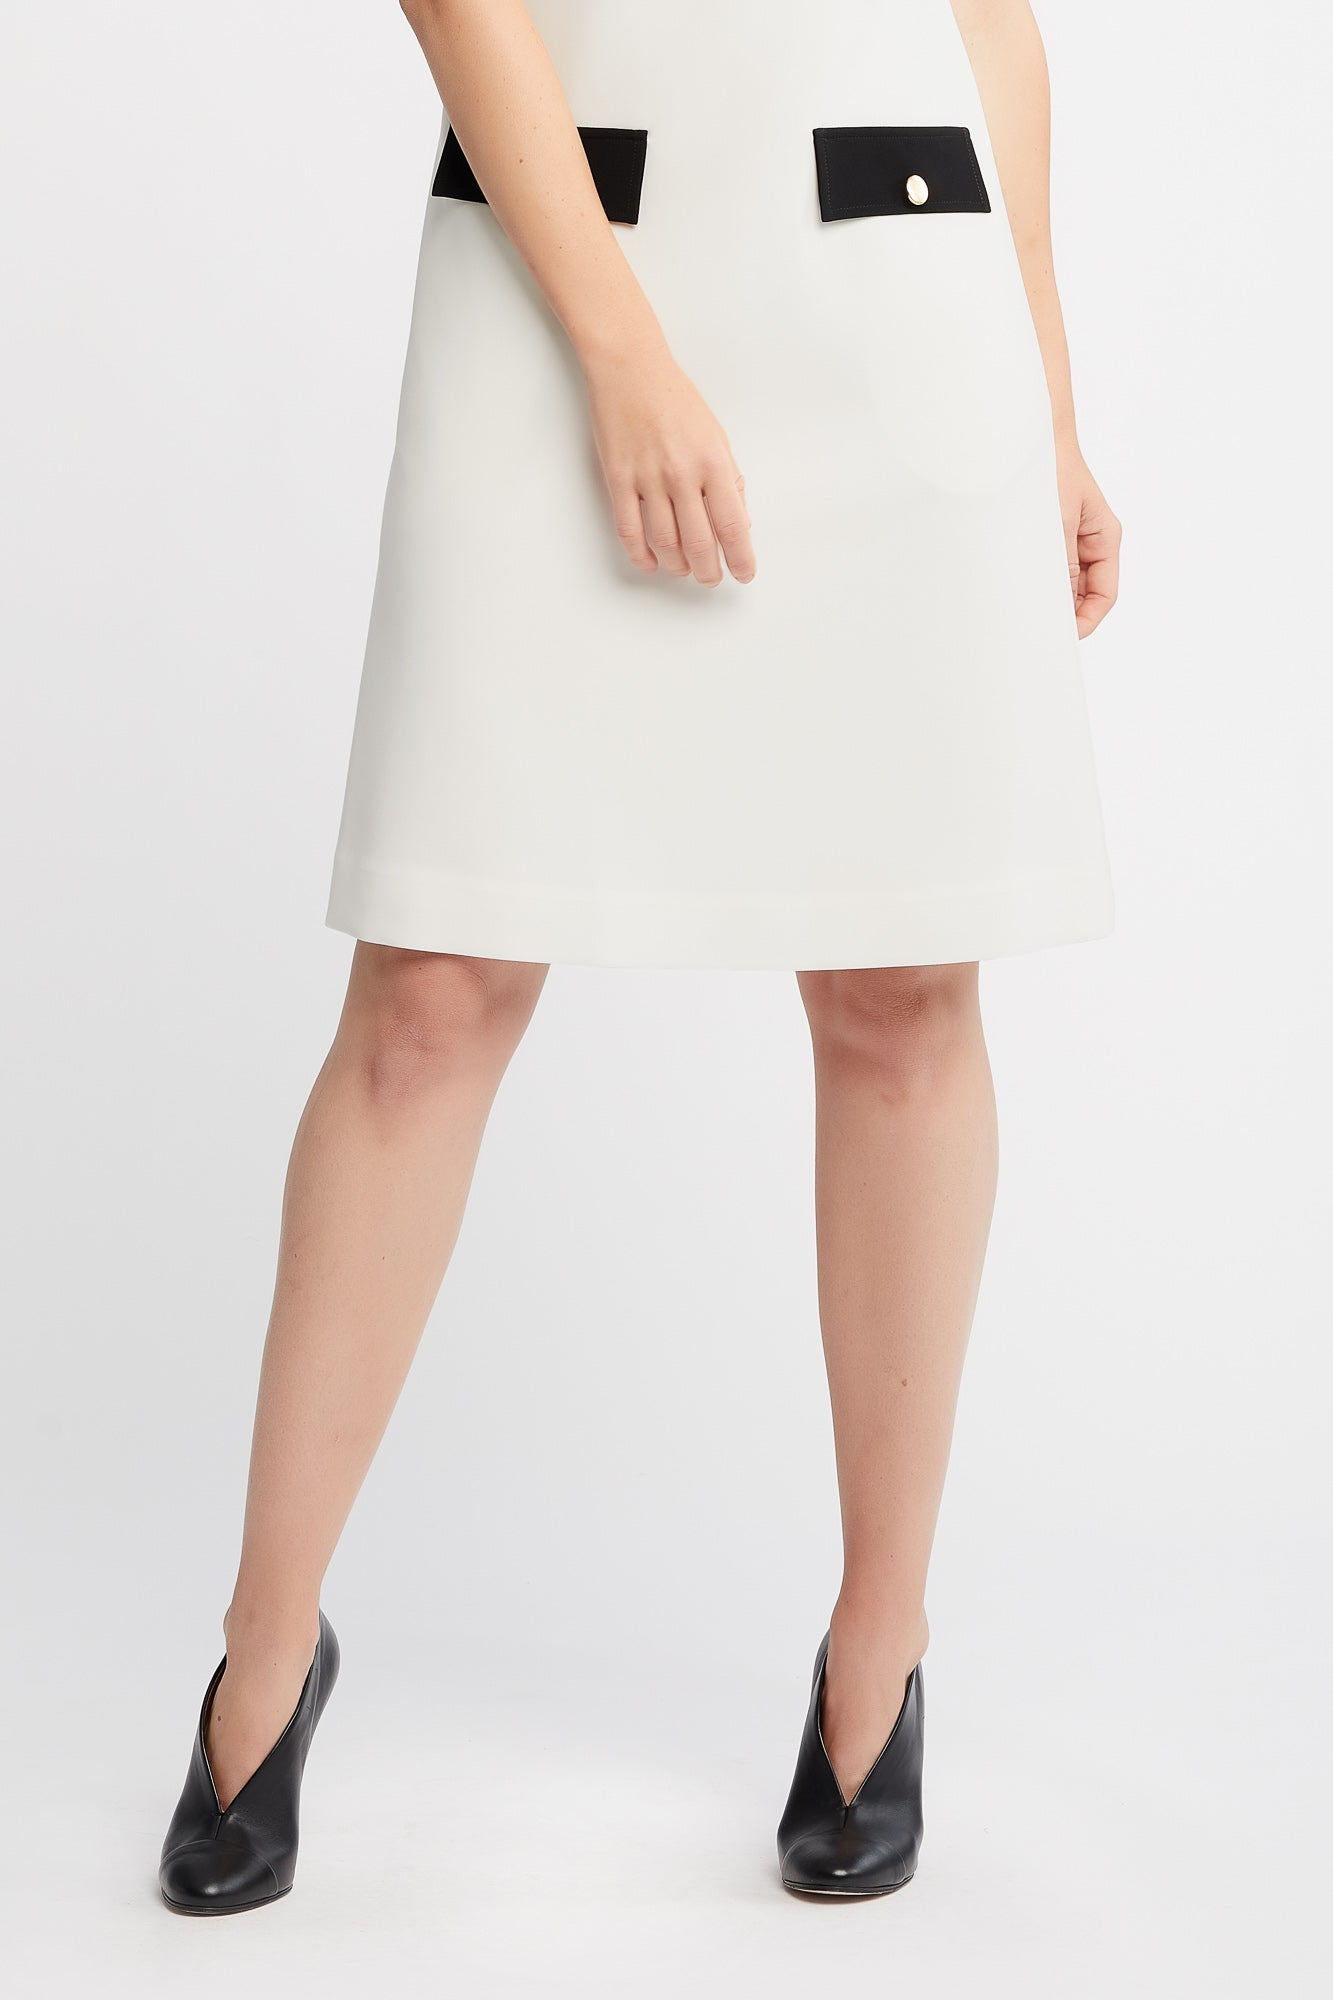 Tia Sleeveless A-line Work Dress in Off White with Collar